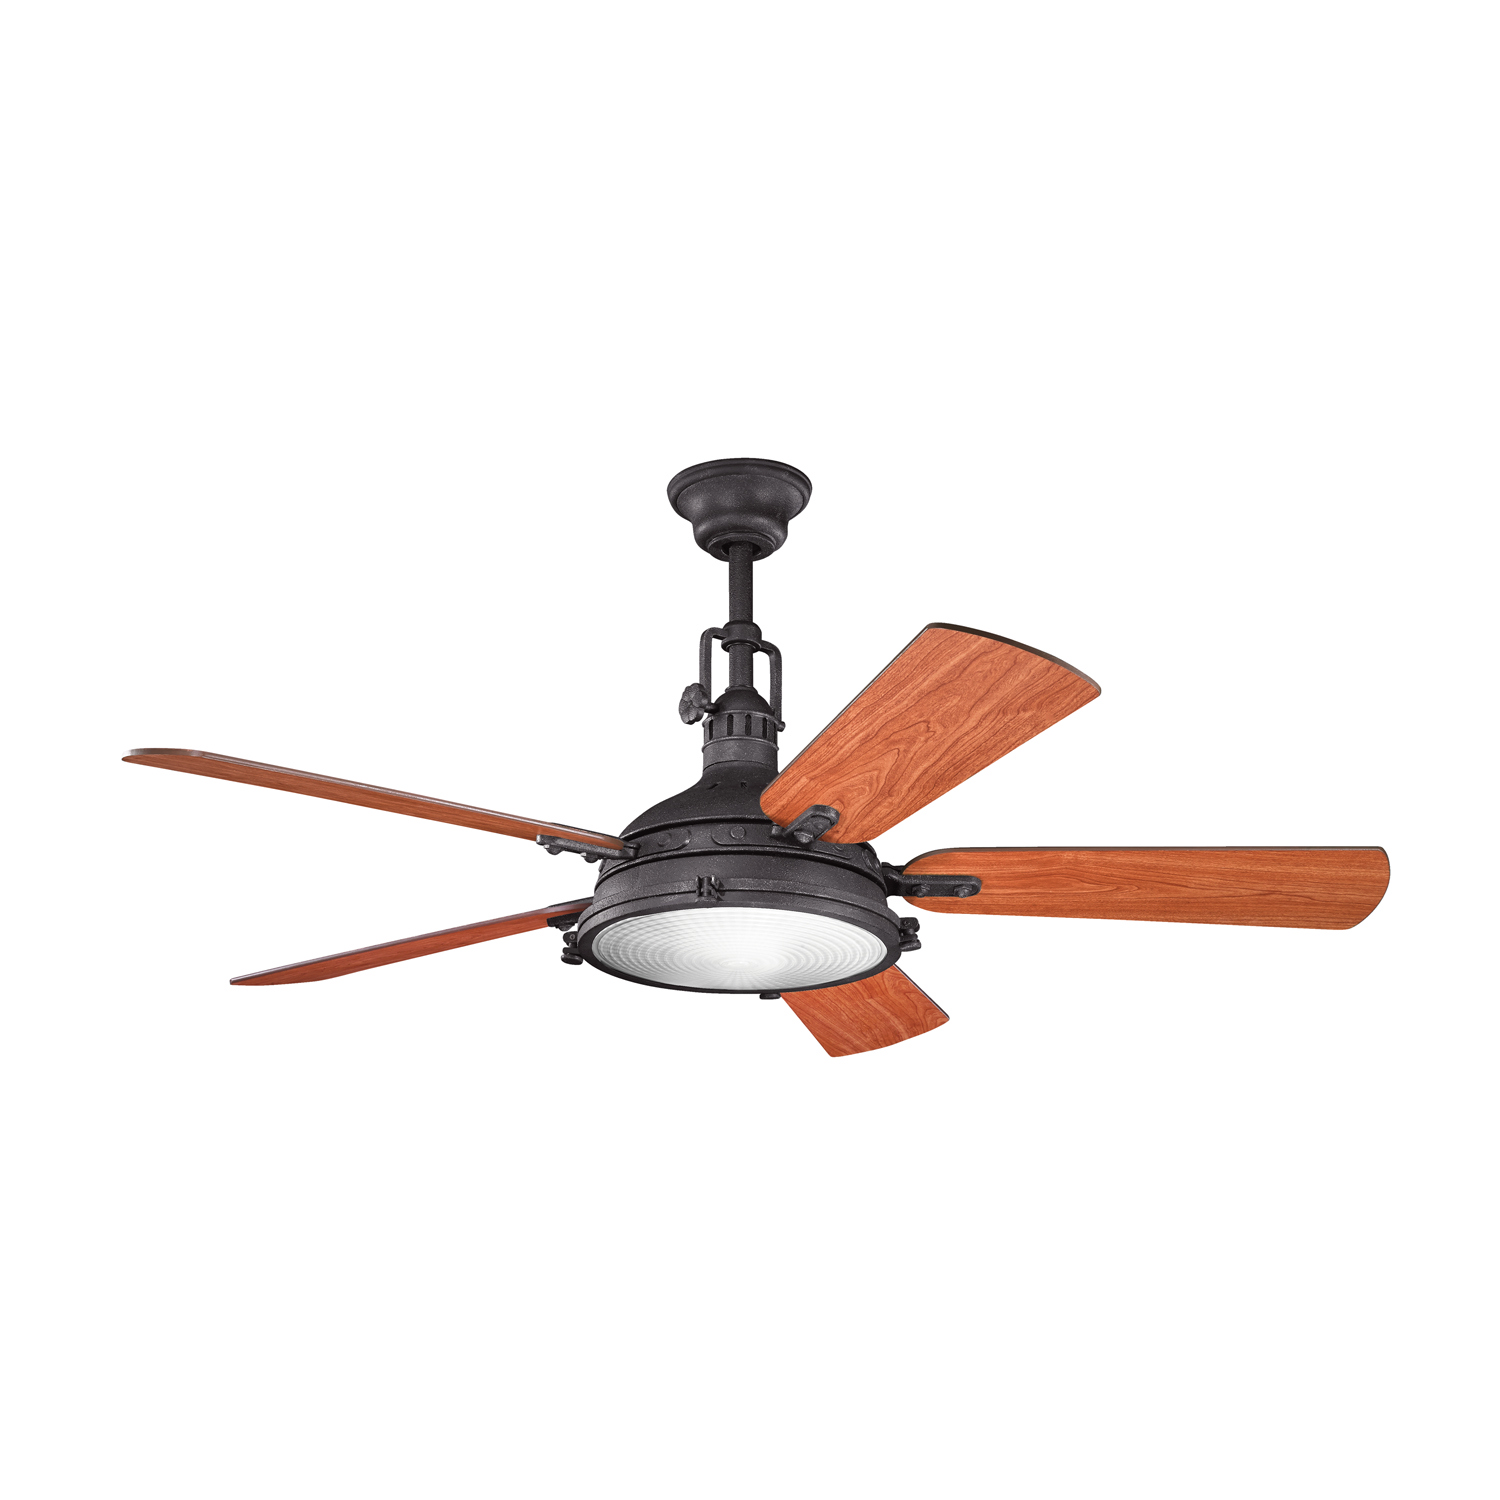 56 inchCeiling Fan from the Hatteras Bay collection by Kichler 300018DBK